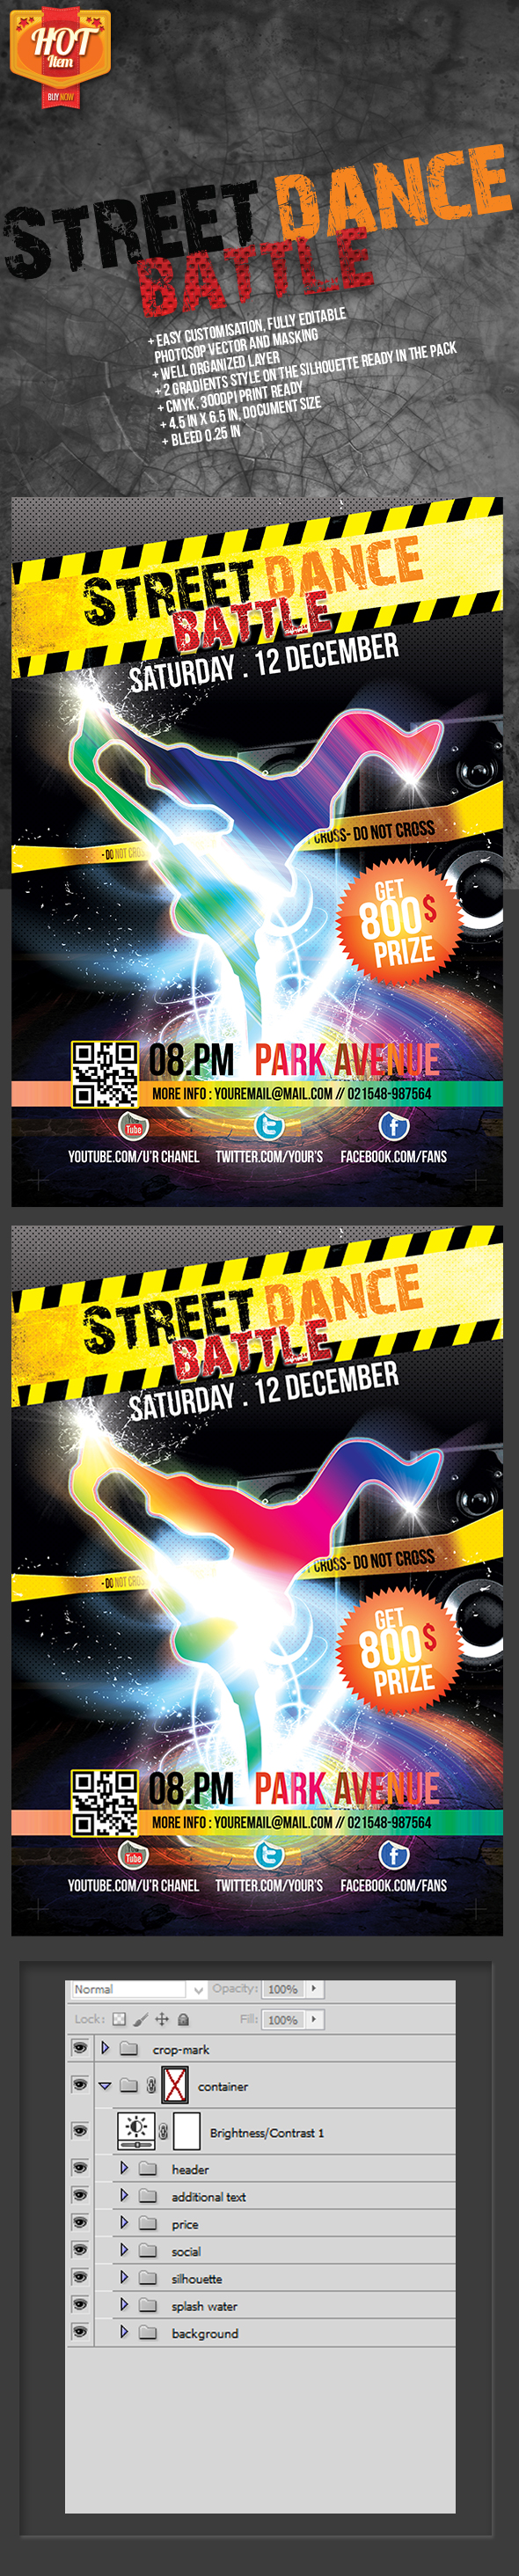 Street Dance Battle Flyer by samsulsekawan